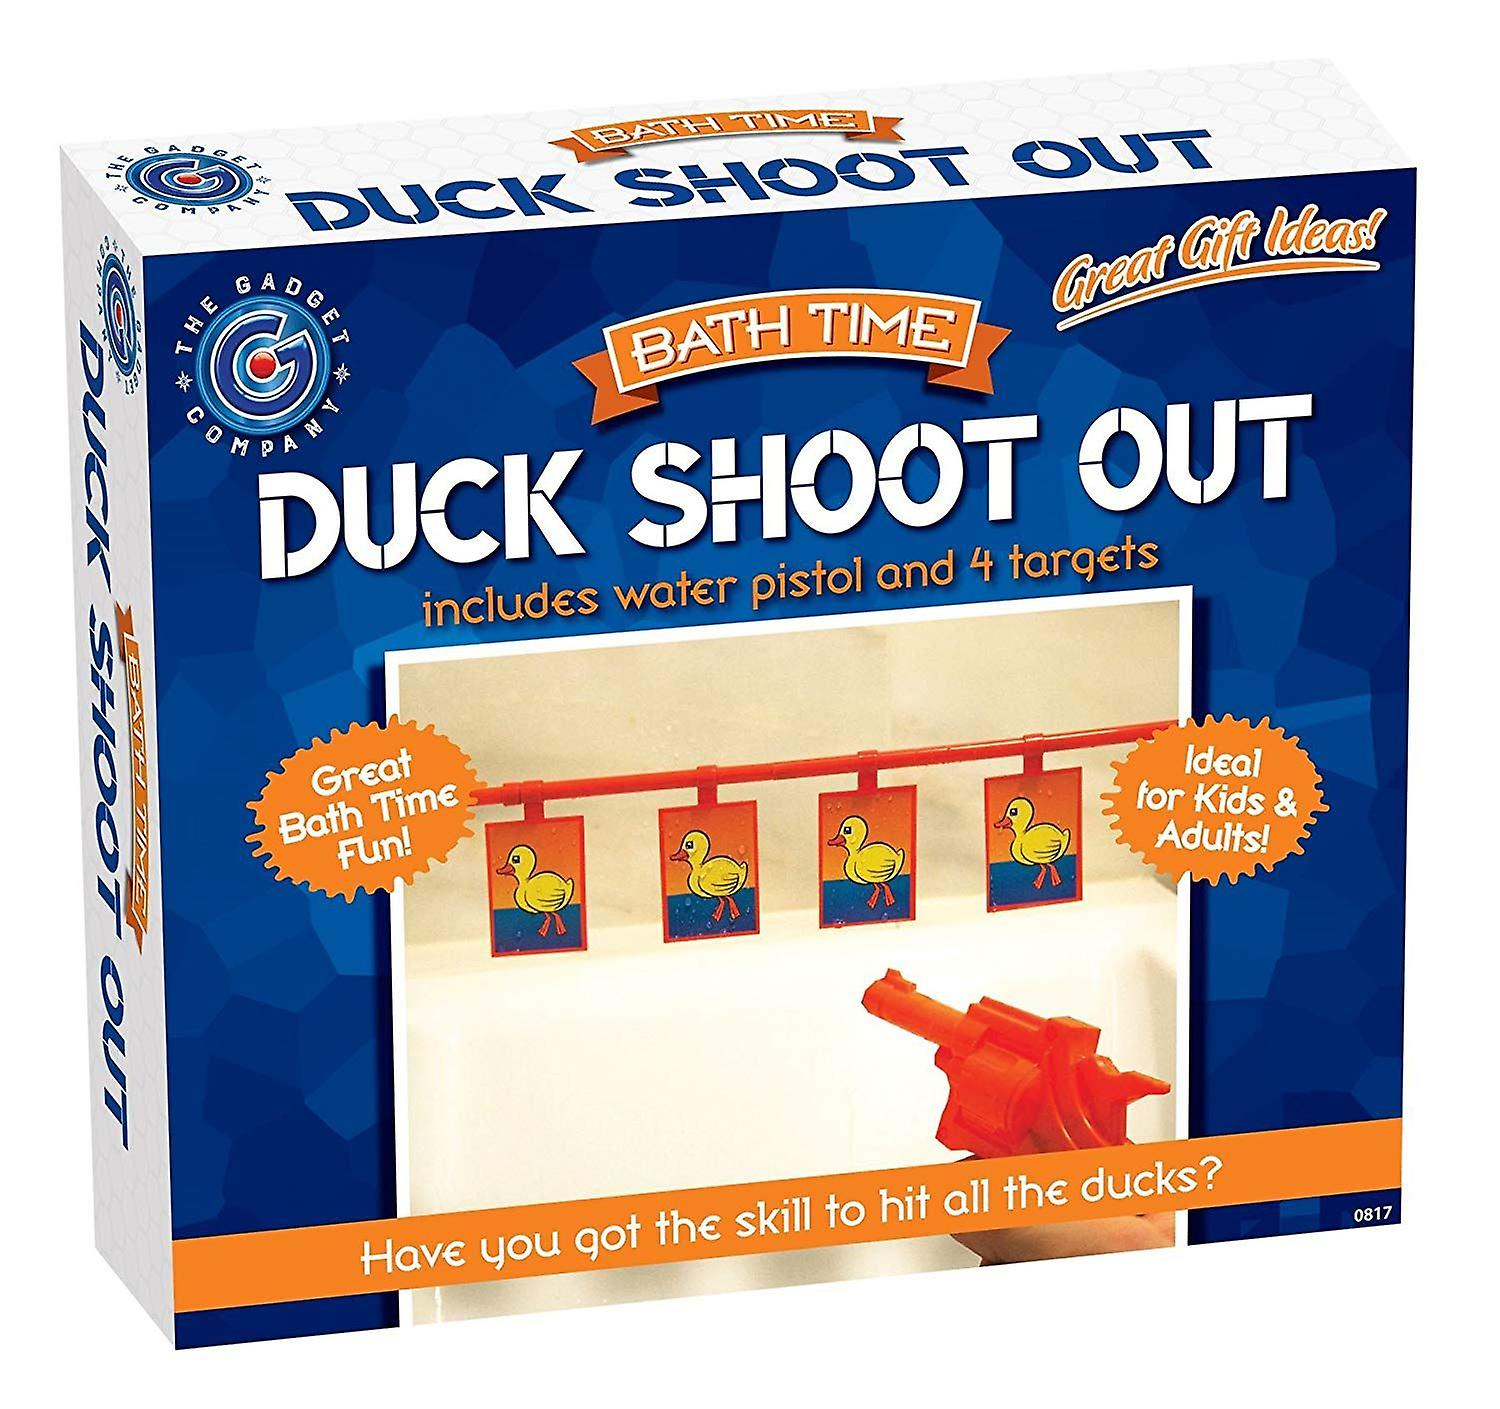 Bathtime Water Pistol Duck Shoot Out Shower Bathroom Novelty Fun Play Game Gift